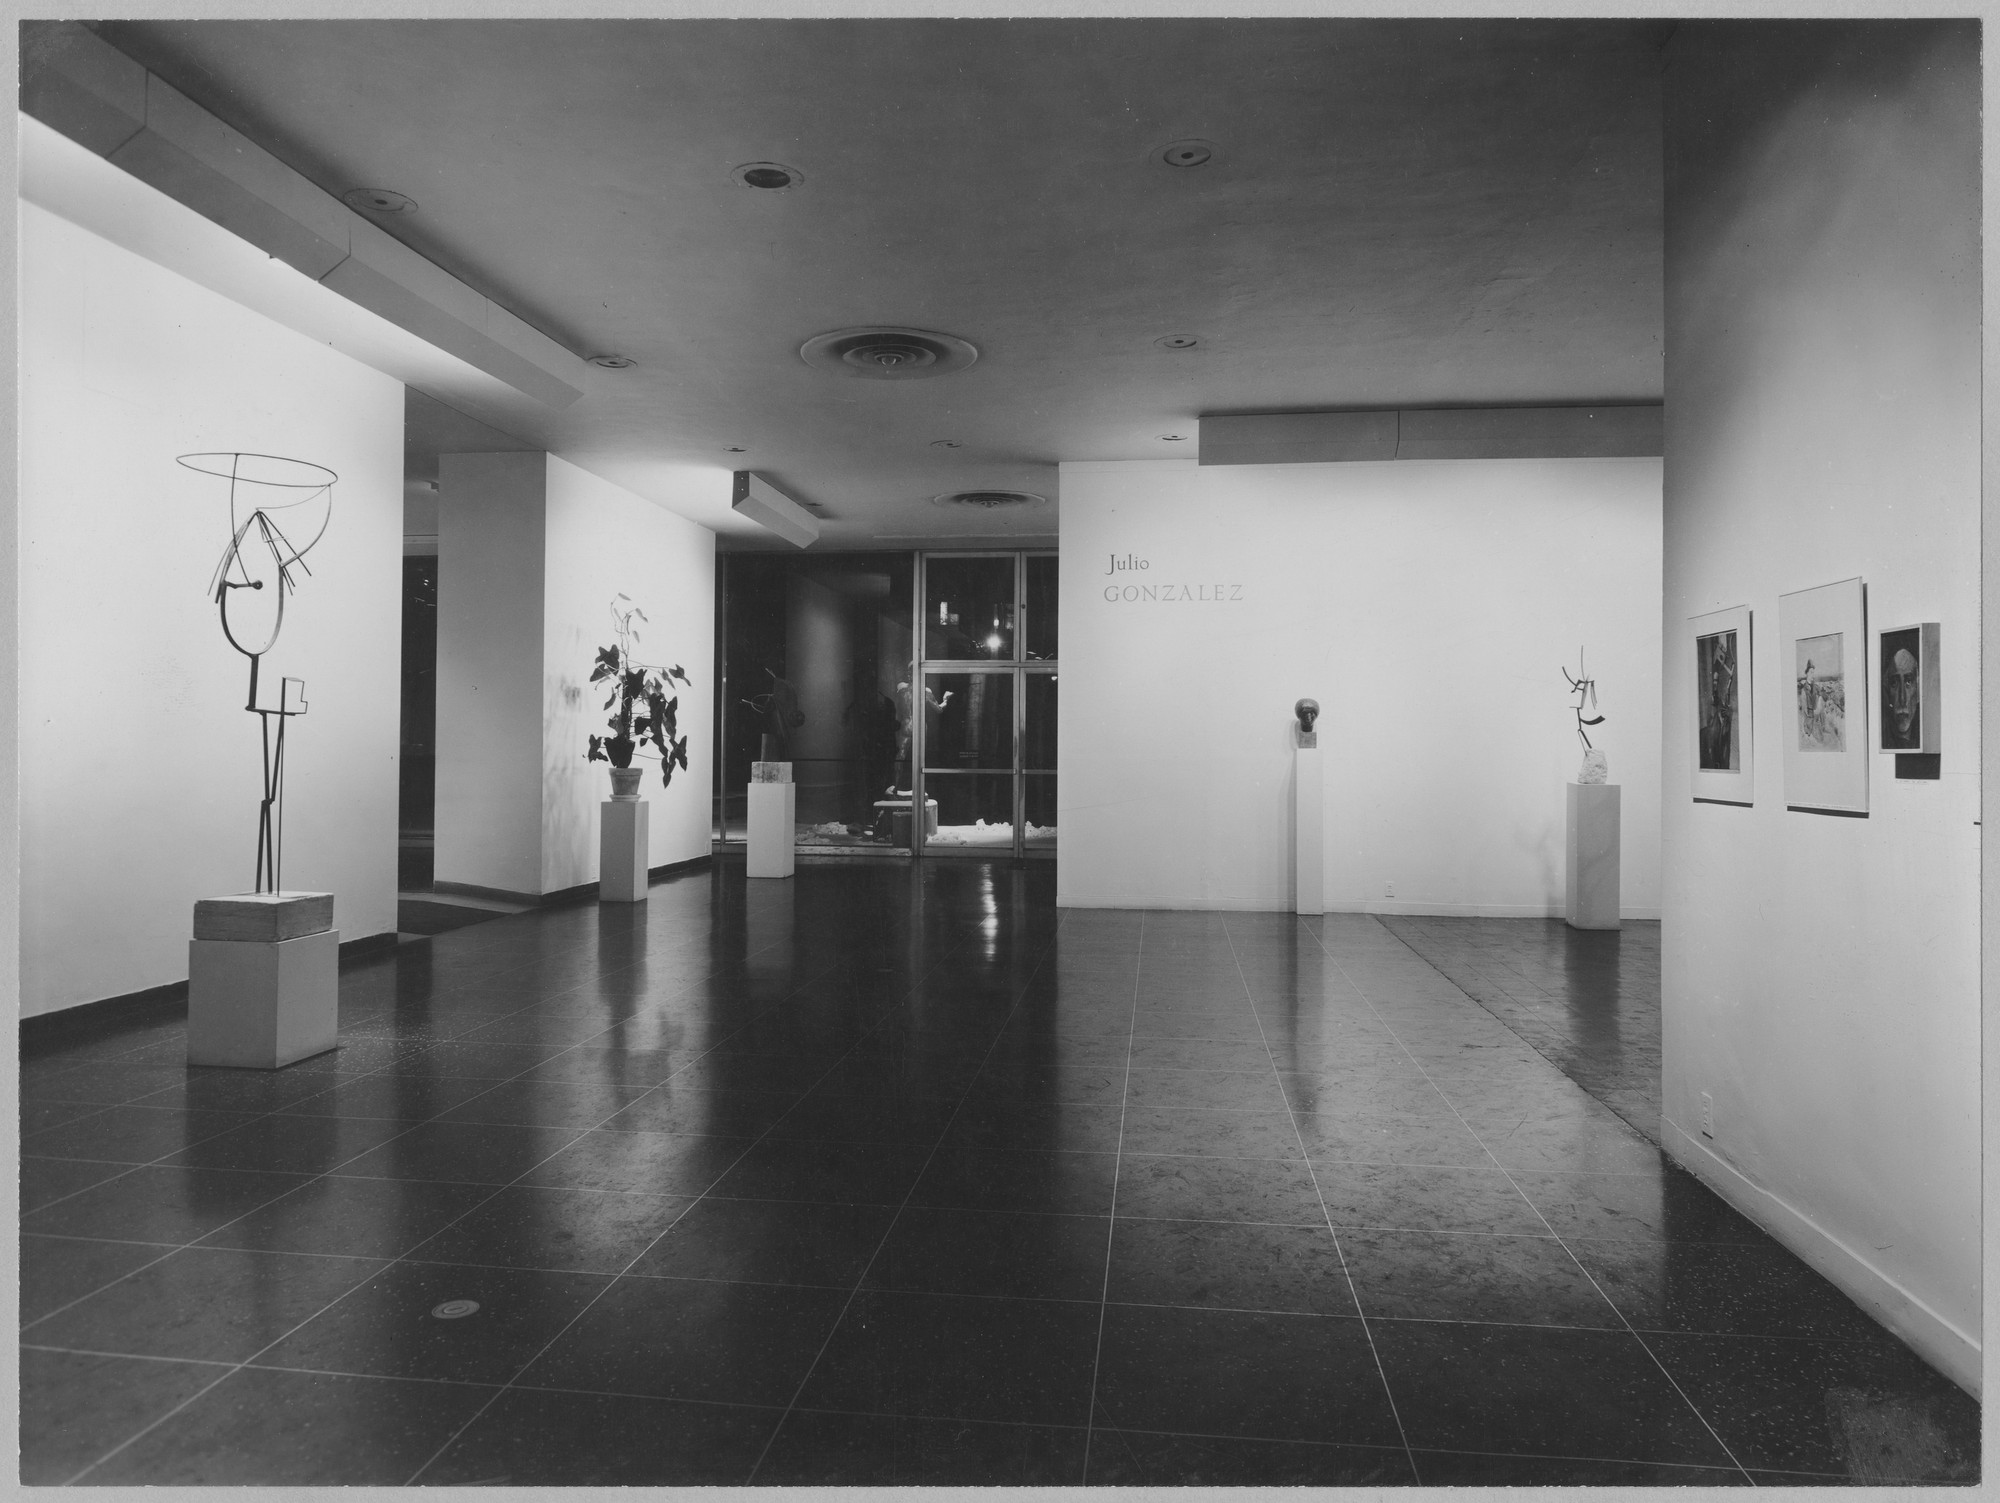 "Installation view of the exhibition, ""Julio González Retrospective"" February 8, 1956–April 8, 1956. Photographic Archive. The Museum of Modern Art Archives, New York. IN597.1. Photograph by Soichi Sunami."